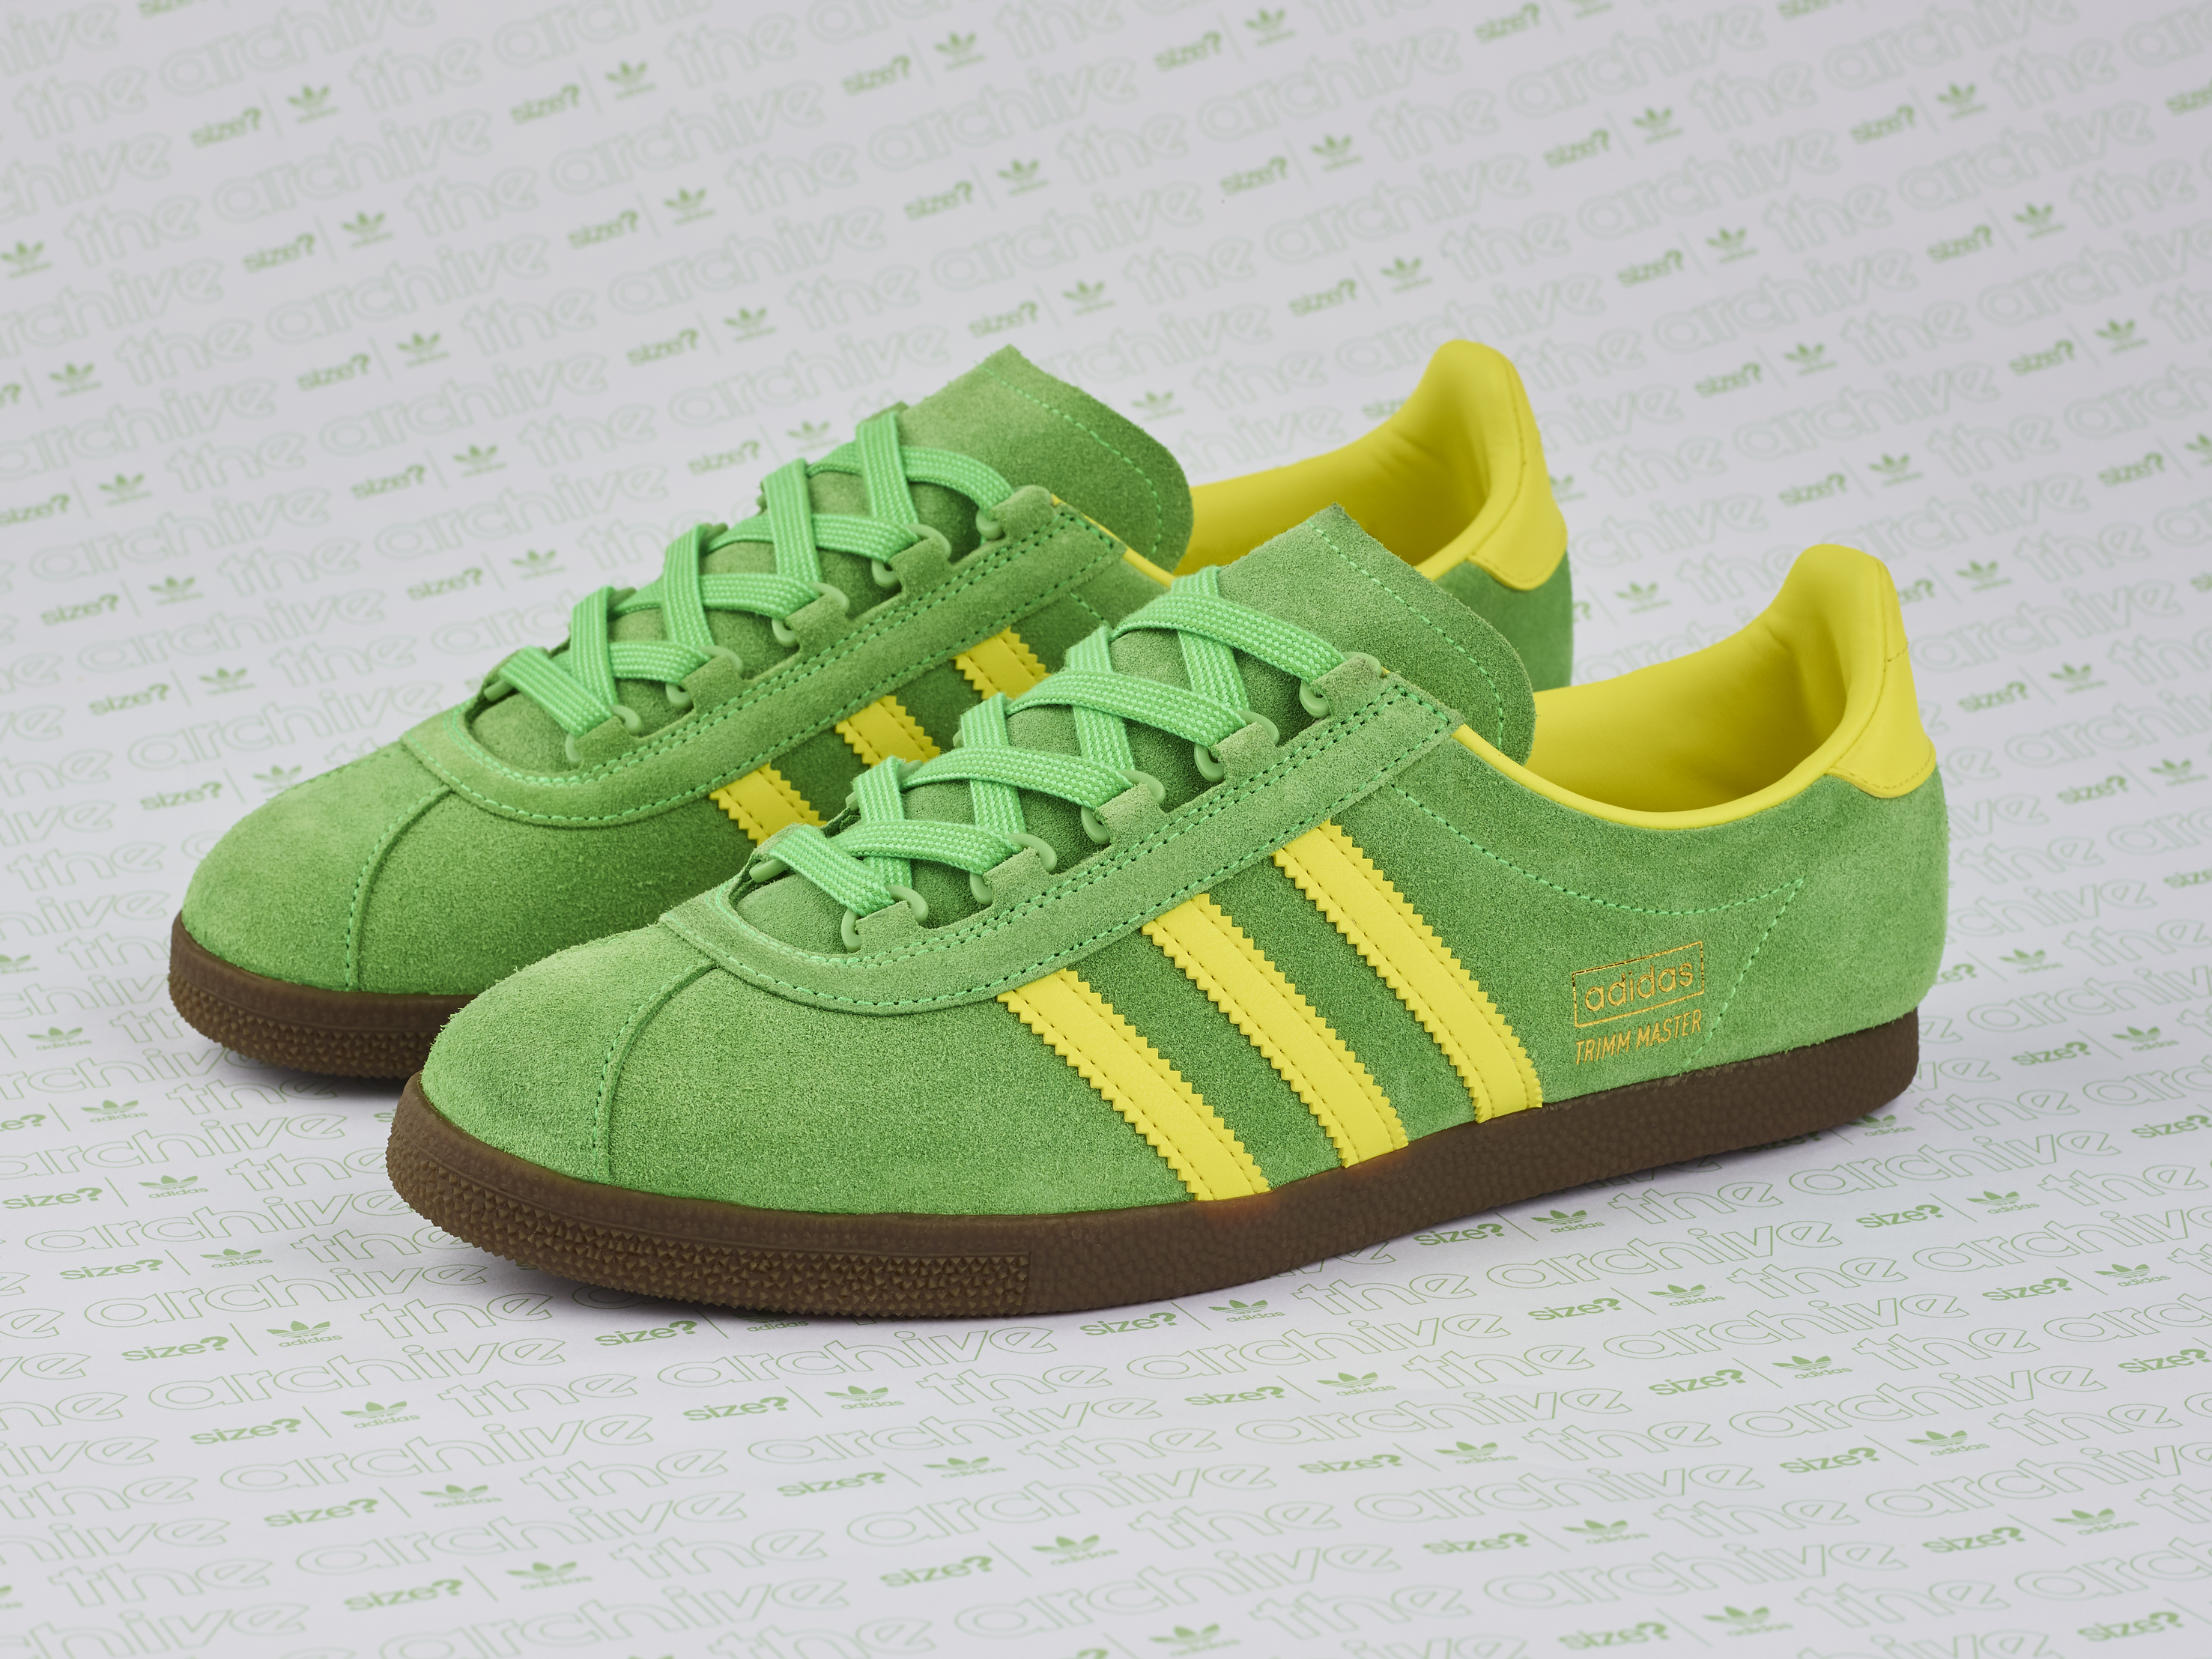 adidas Originals Archive Trimm Master OG size? Exclusive